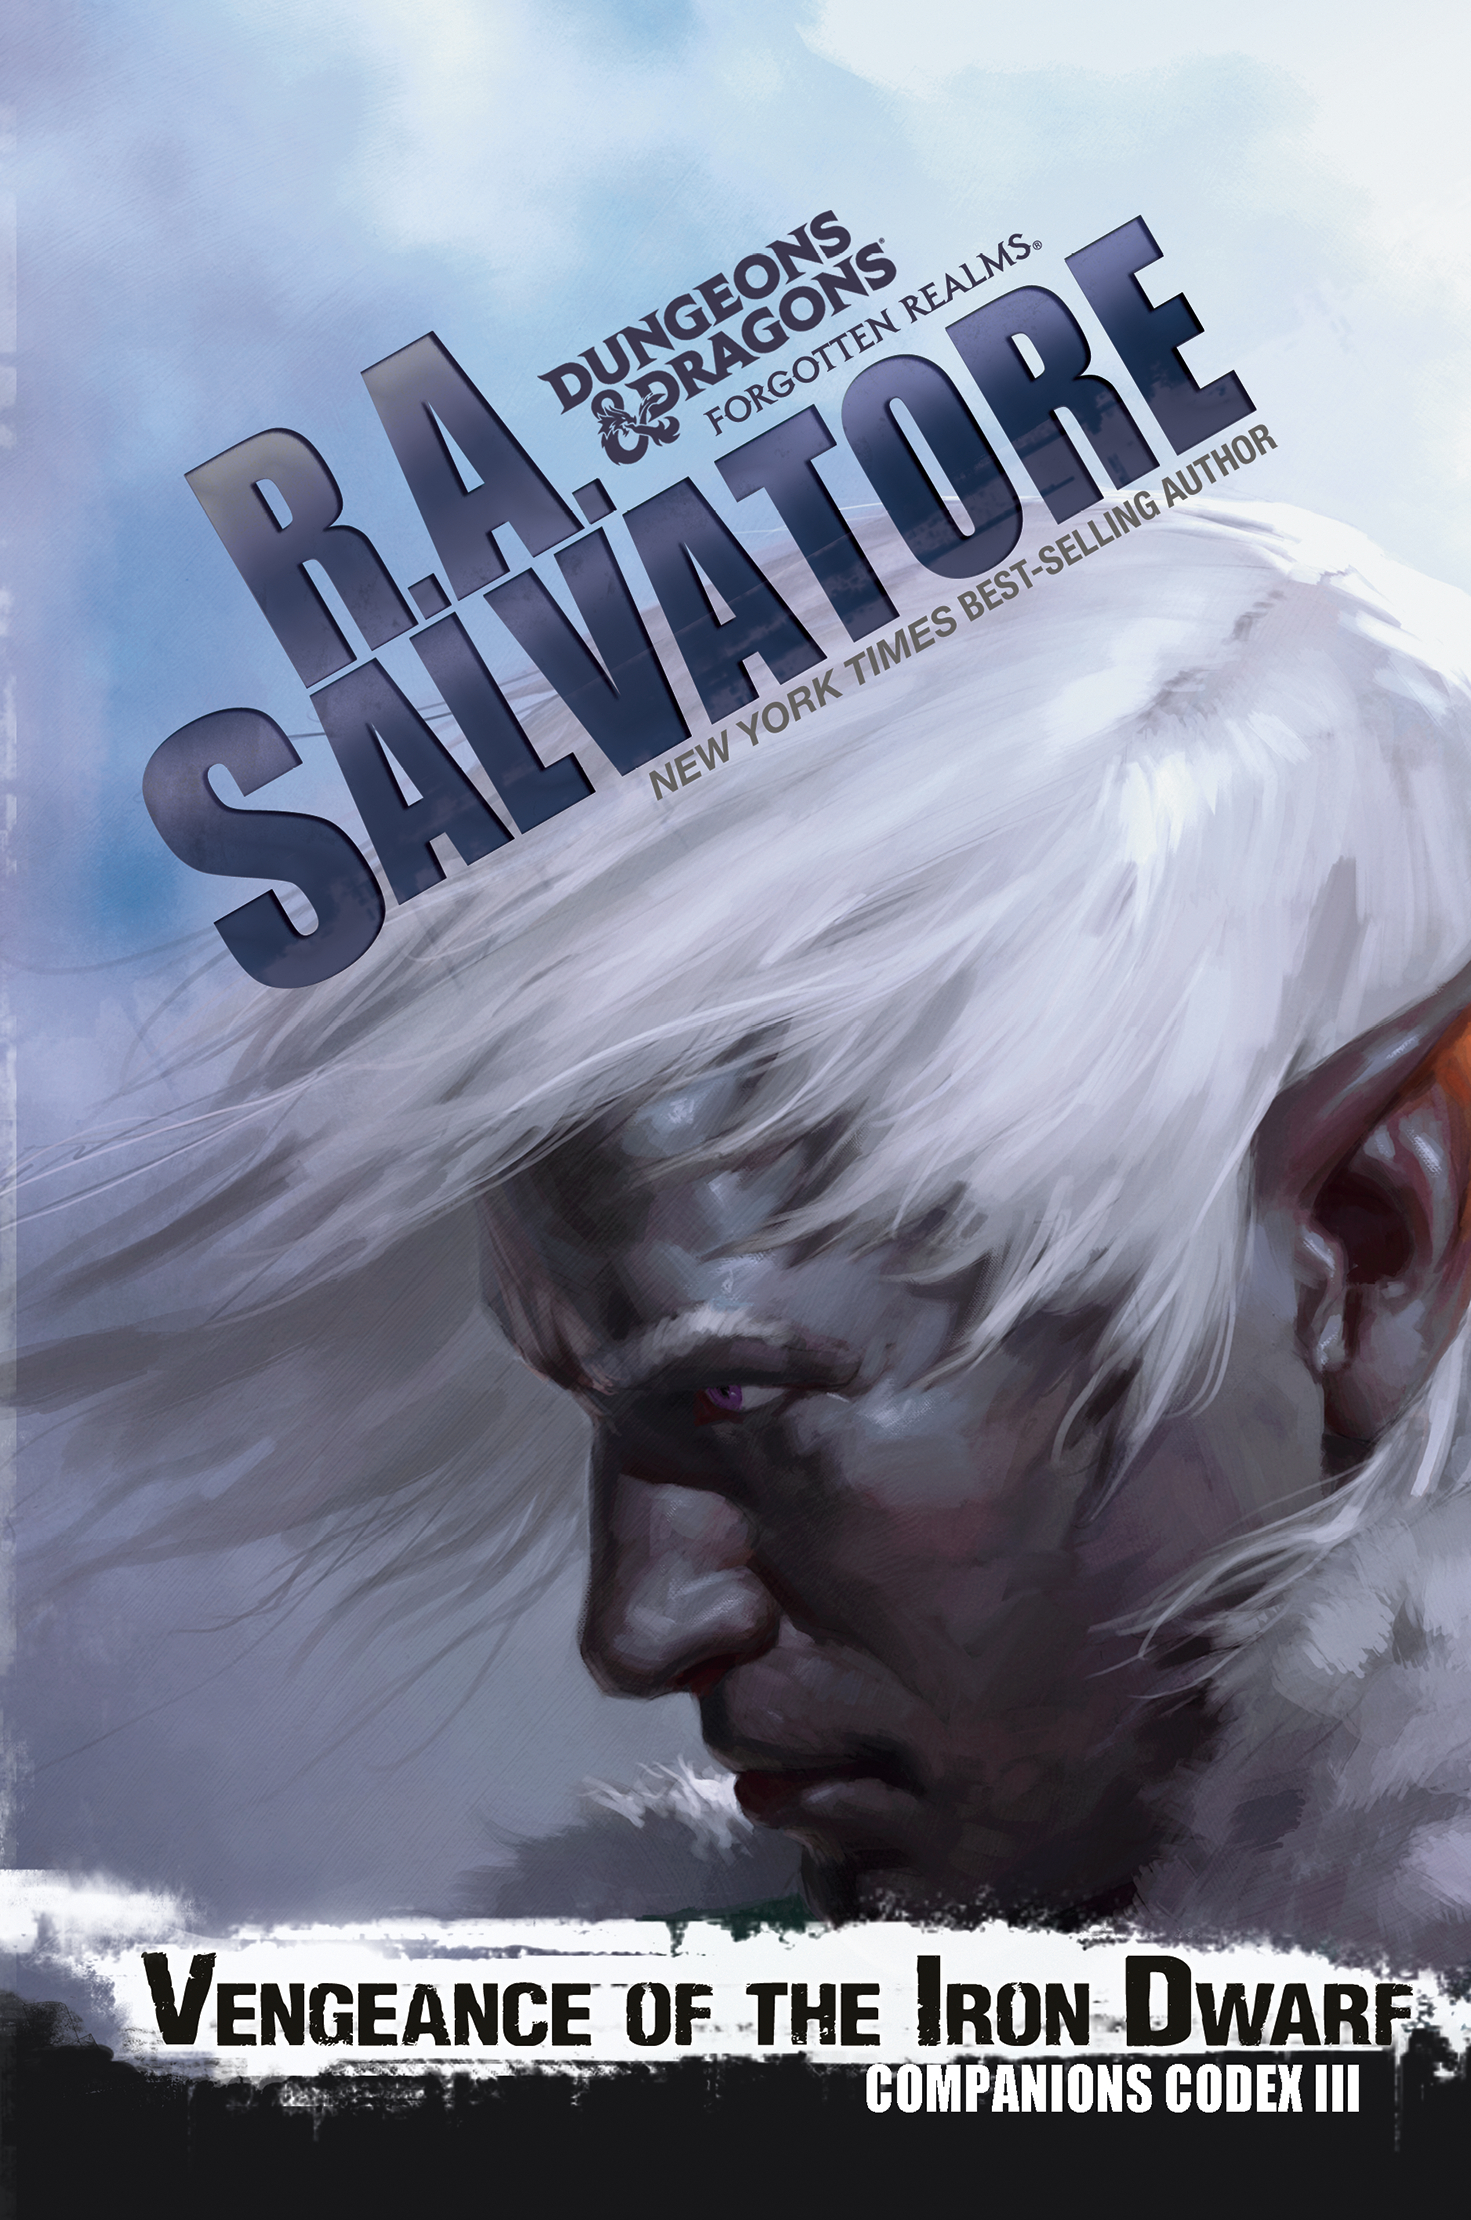 Portada del libro Vengeance of the iron dwarf, de R. A. Salvatore